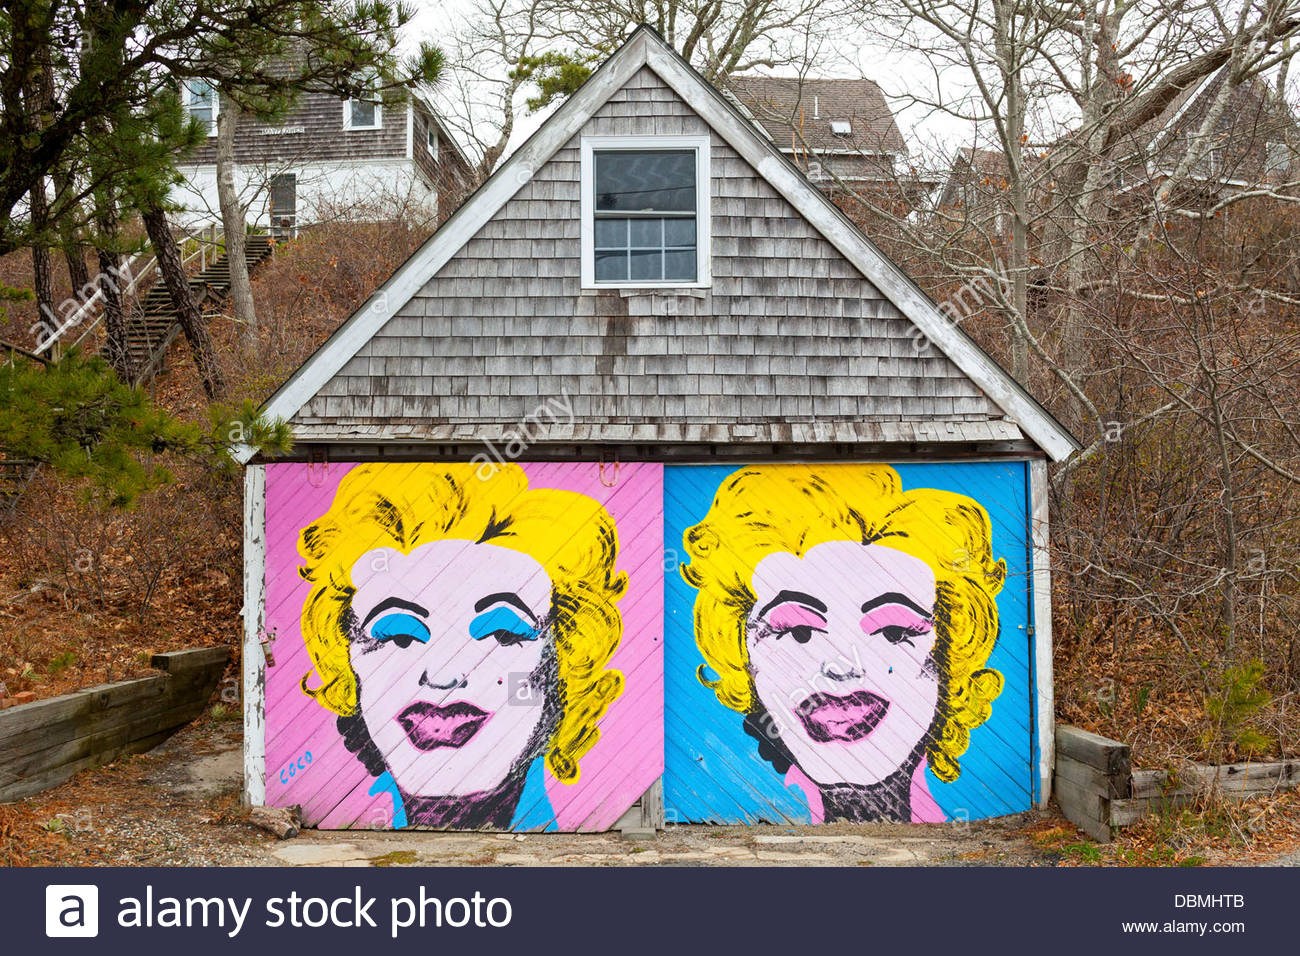 A car garage with a painting of Marilyn Monroe on it. - Stock Image